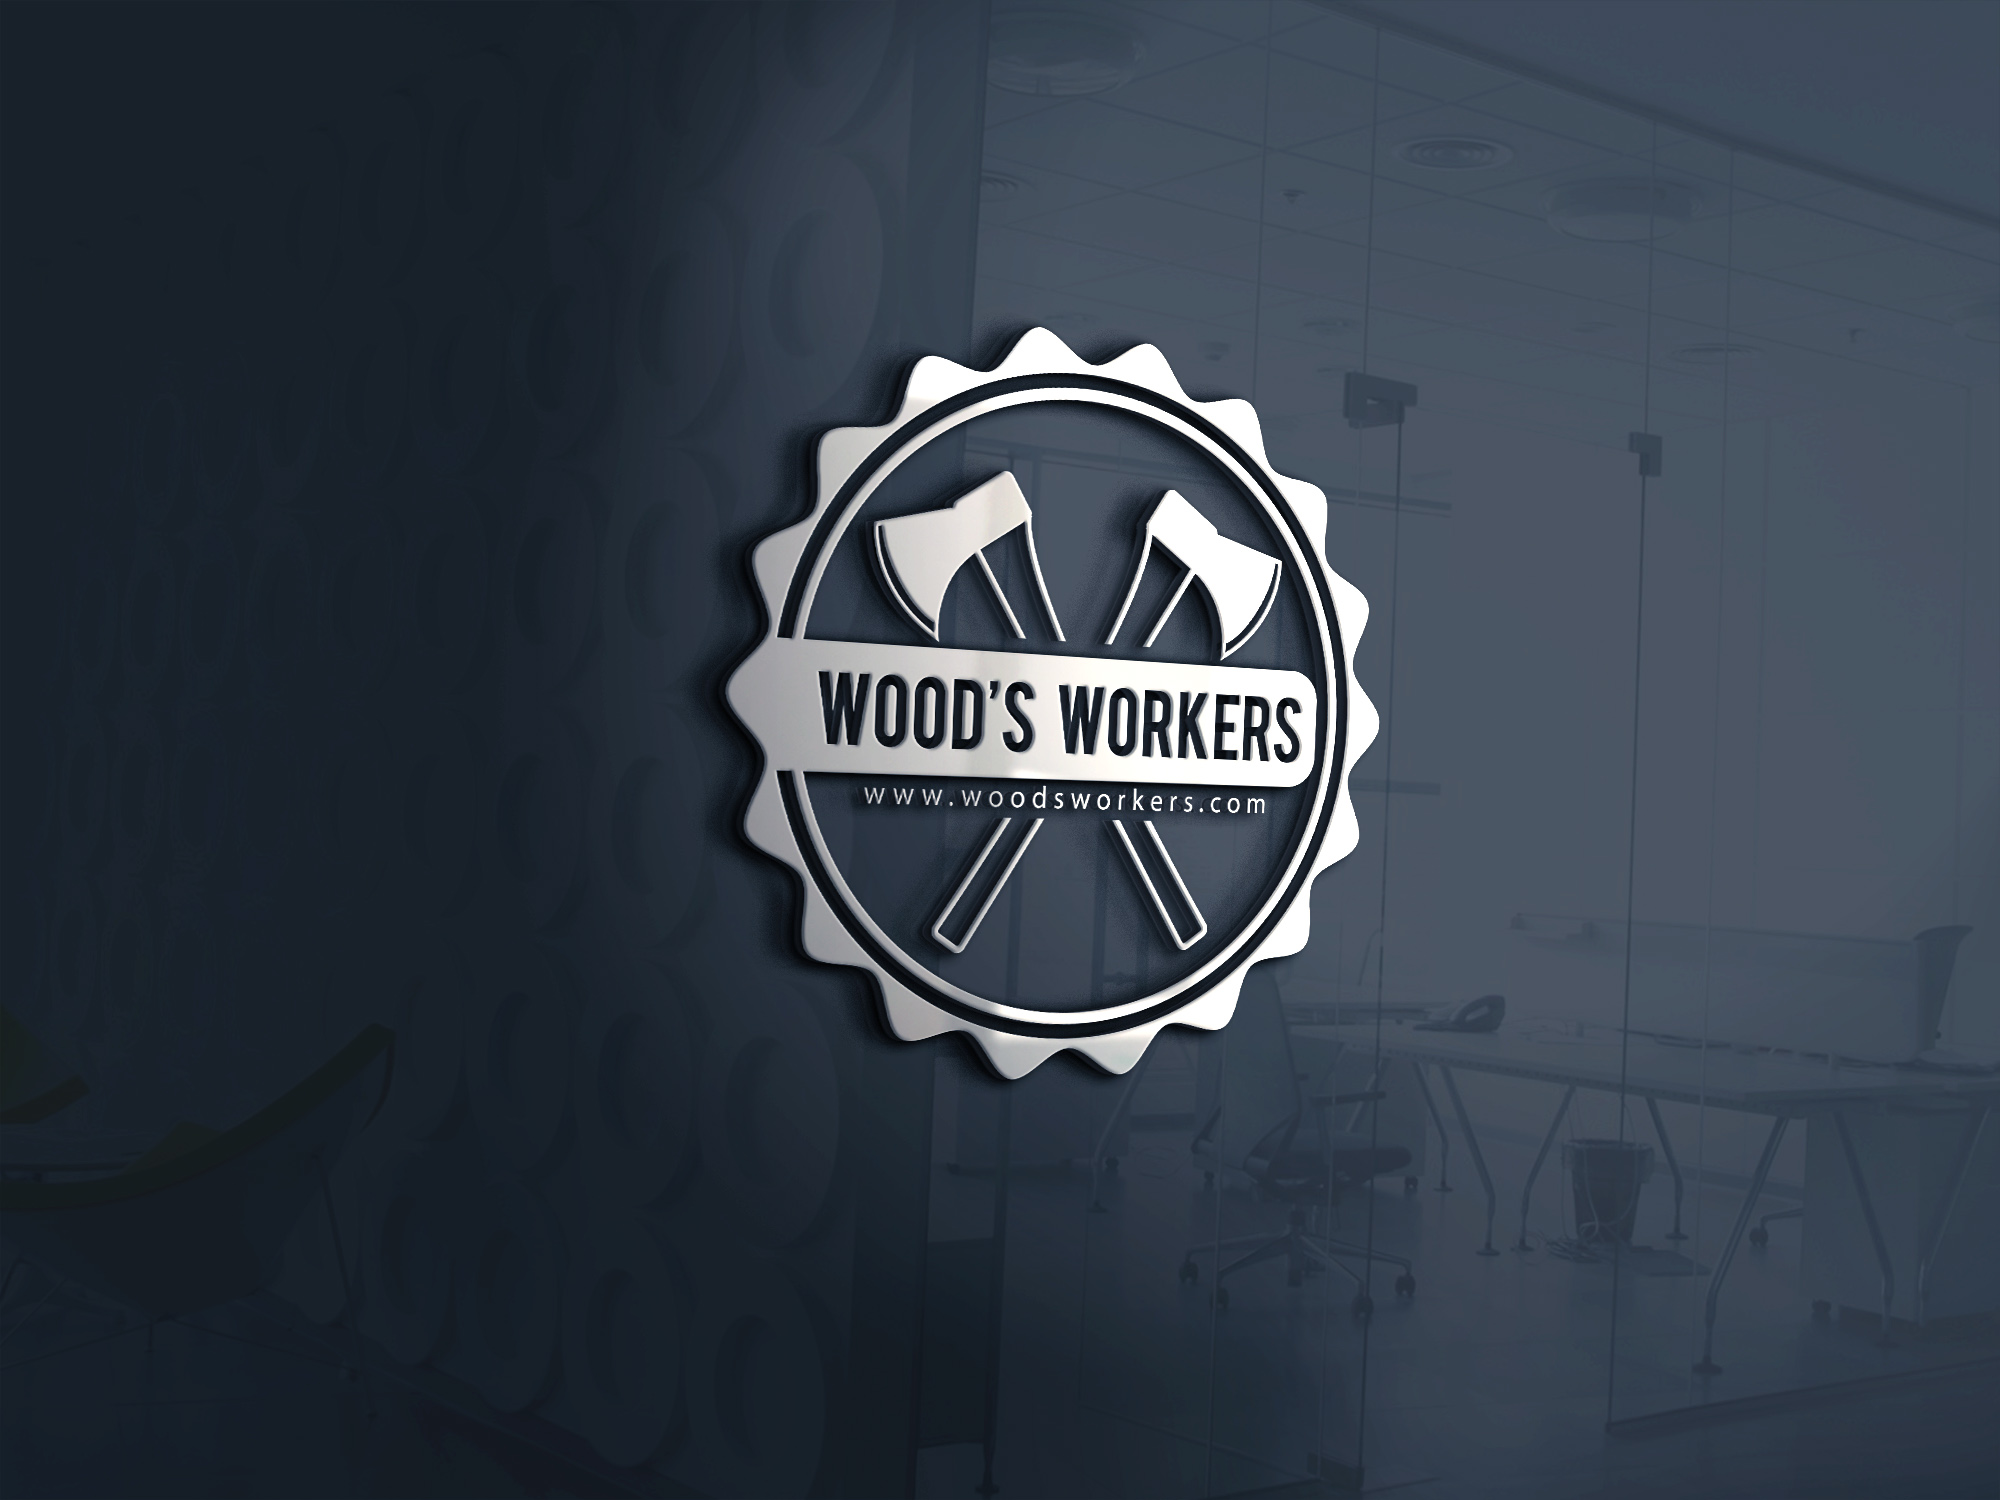 Professional 3 Unique Logo Design With in 24hrs Delivery